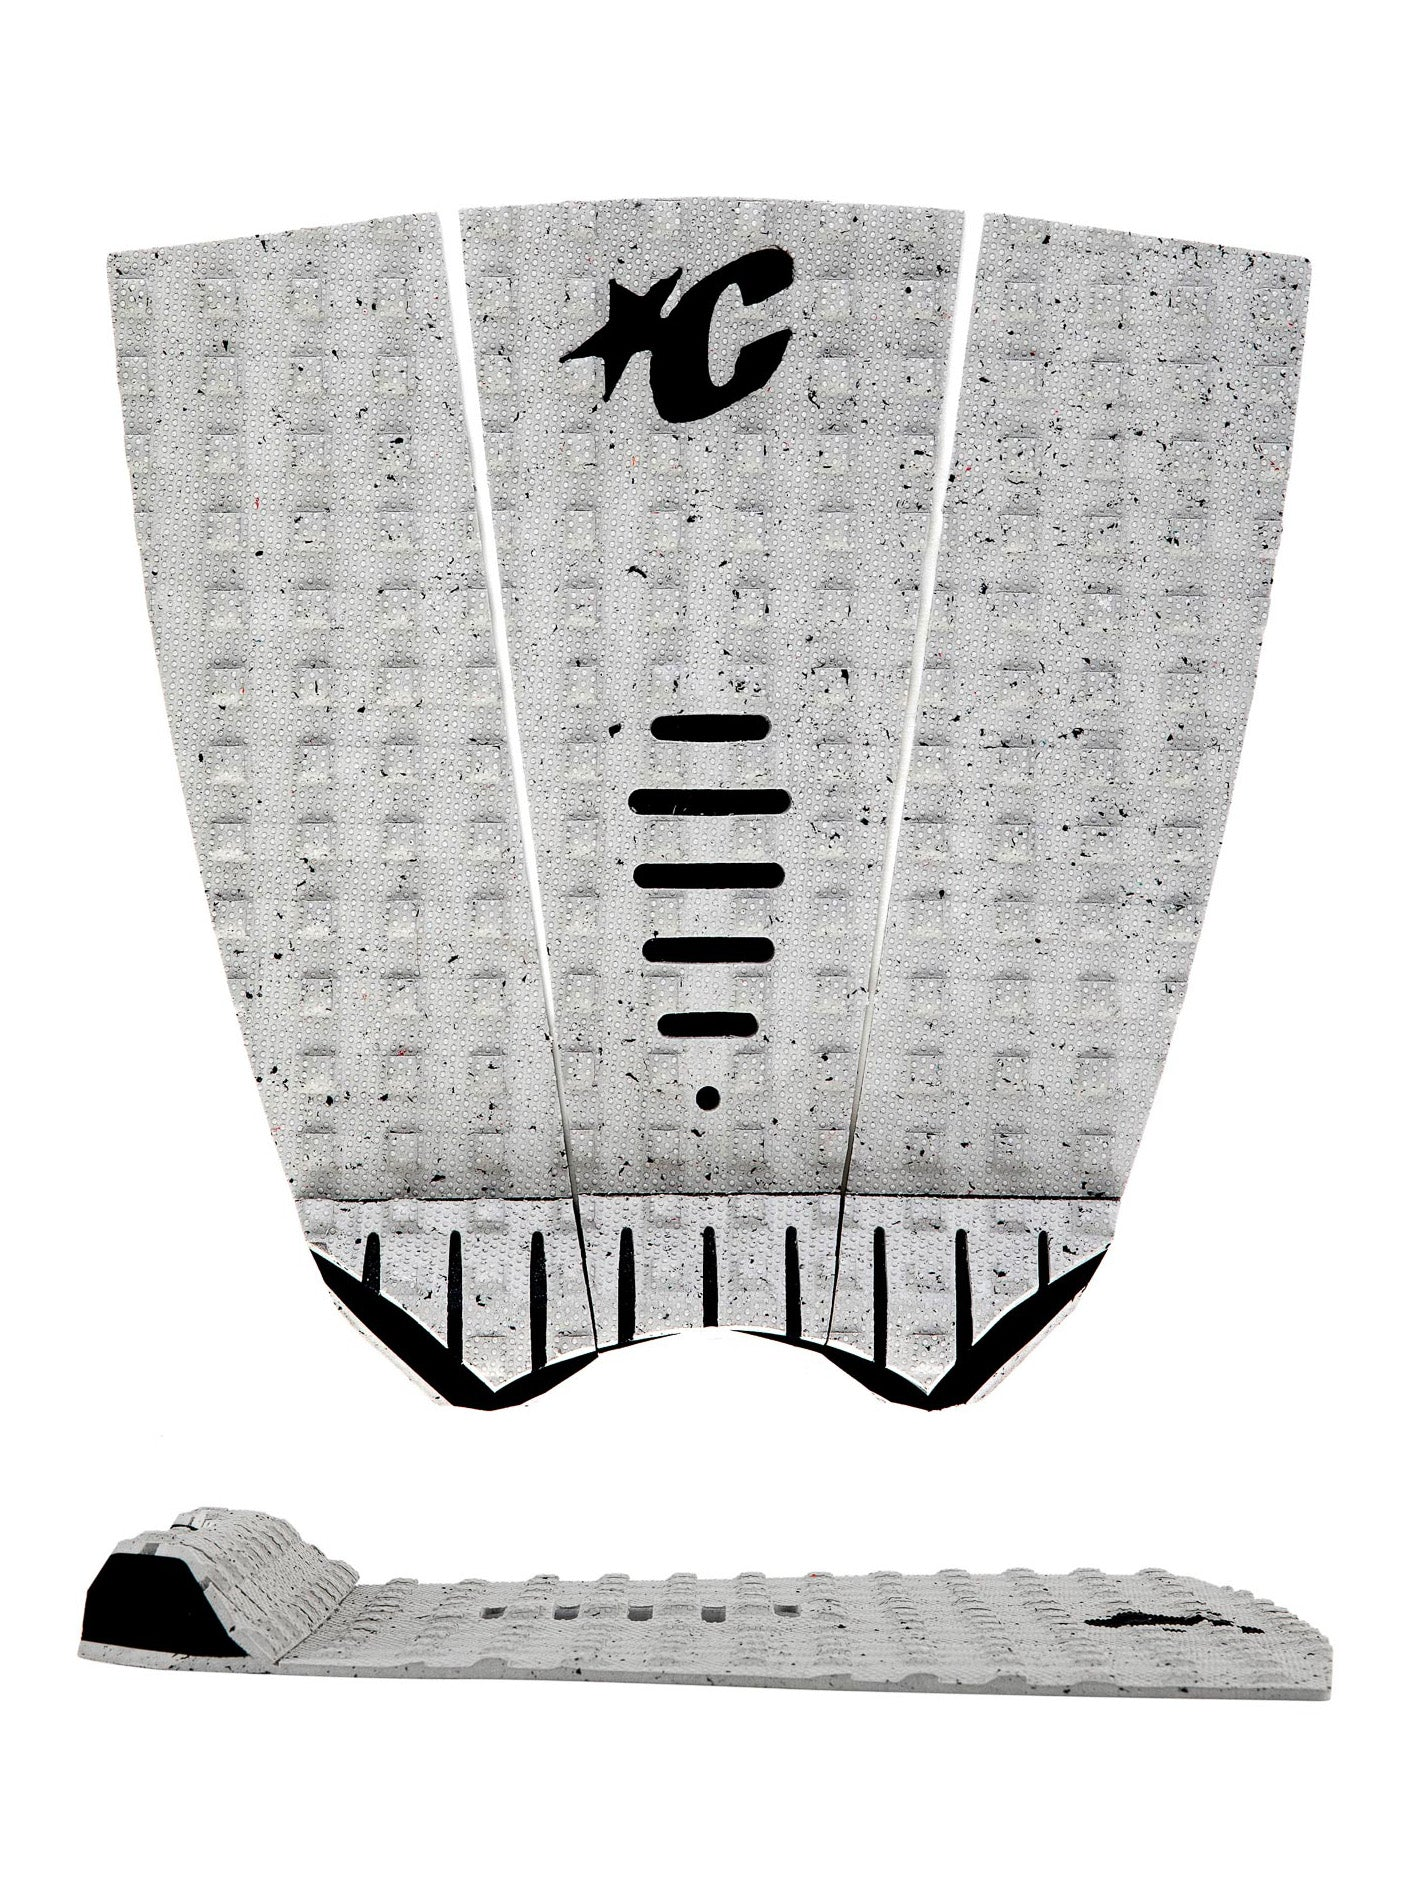 Image of Creatures Of Leisure Creatures Of Leisure Mick Fanning Lite Ecopure Traction Pad - Cement